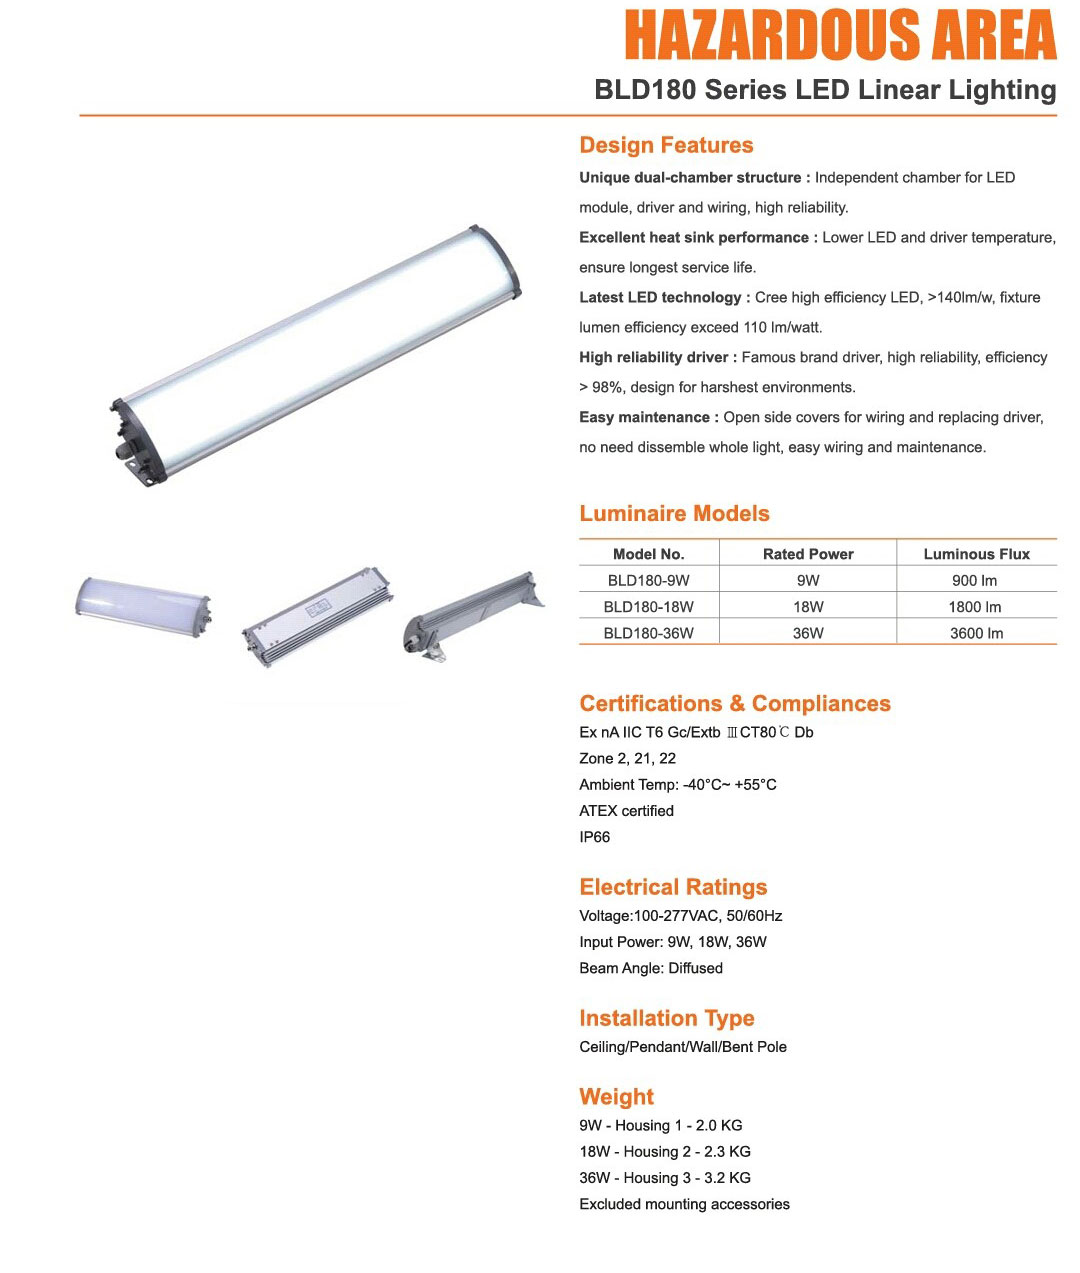 BLD180 LED Linear Lighting